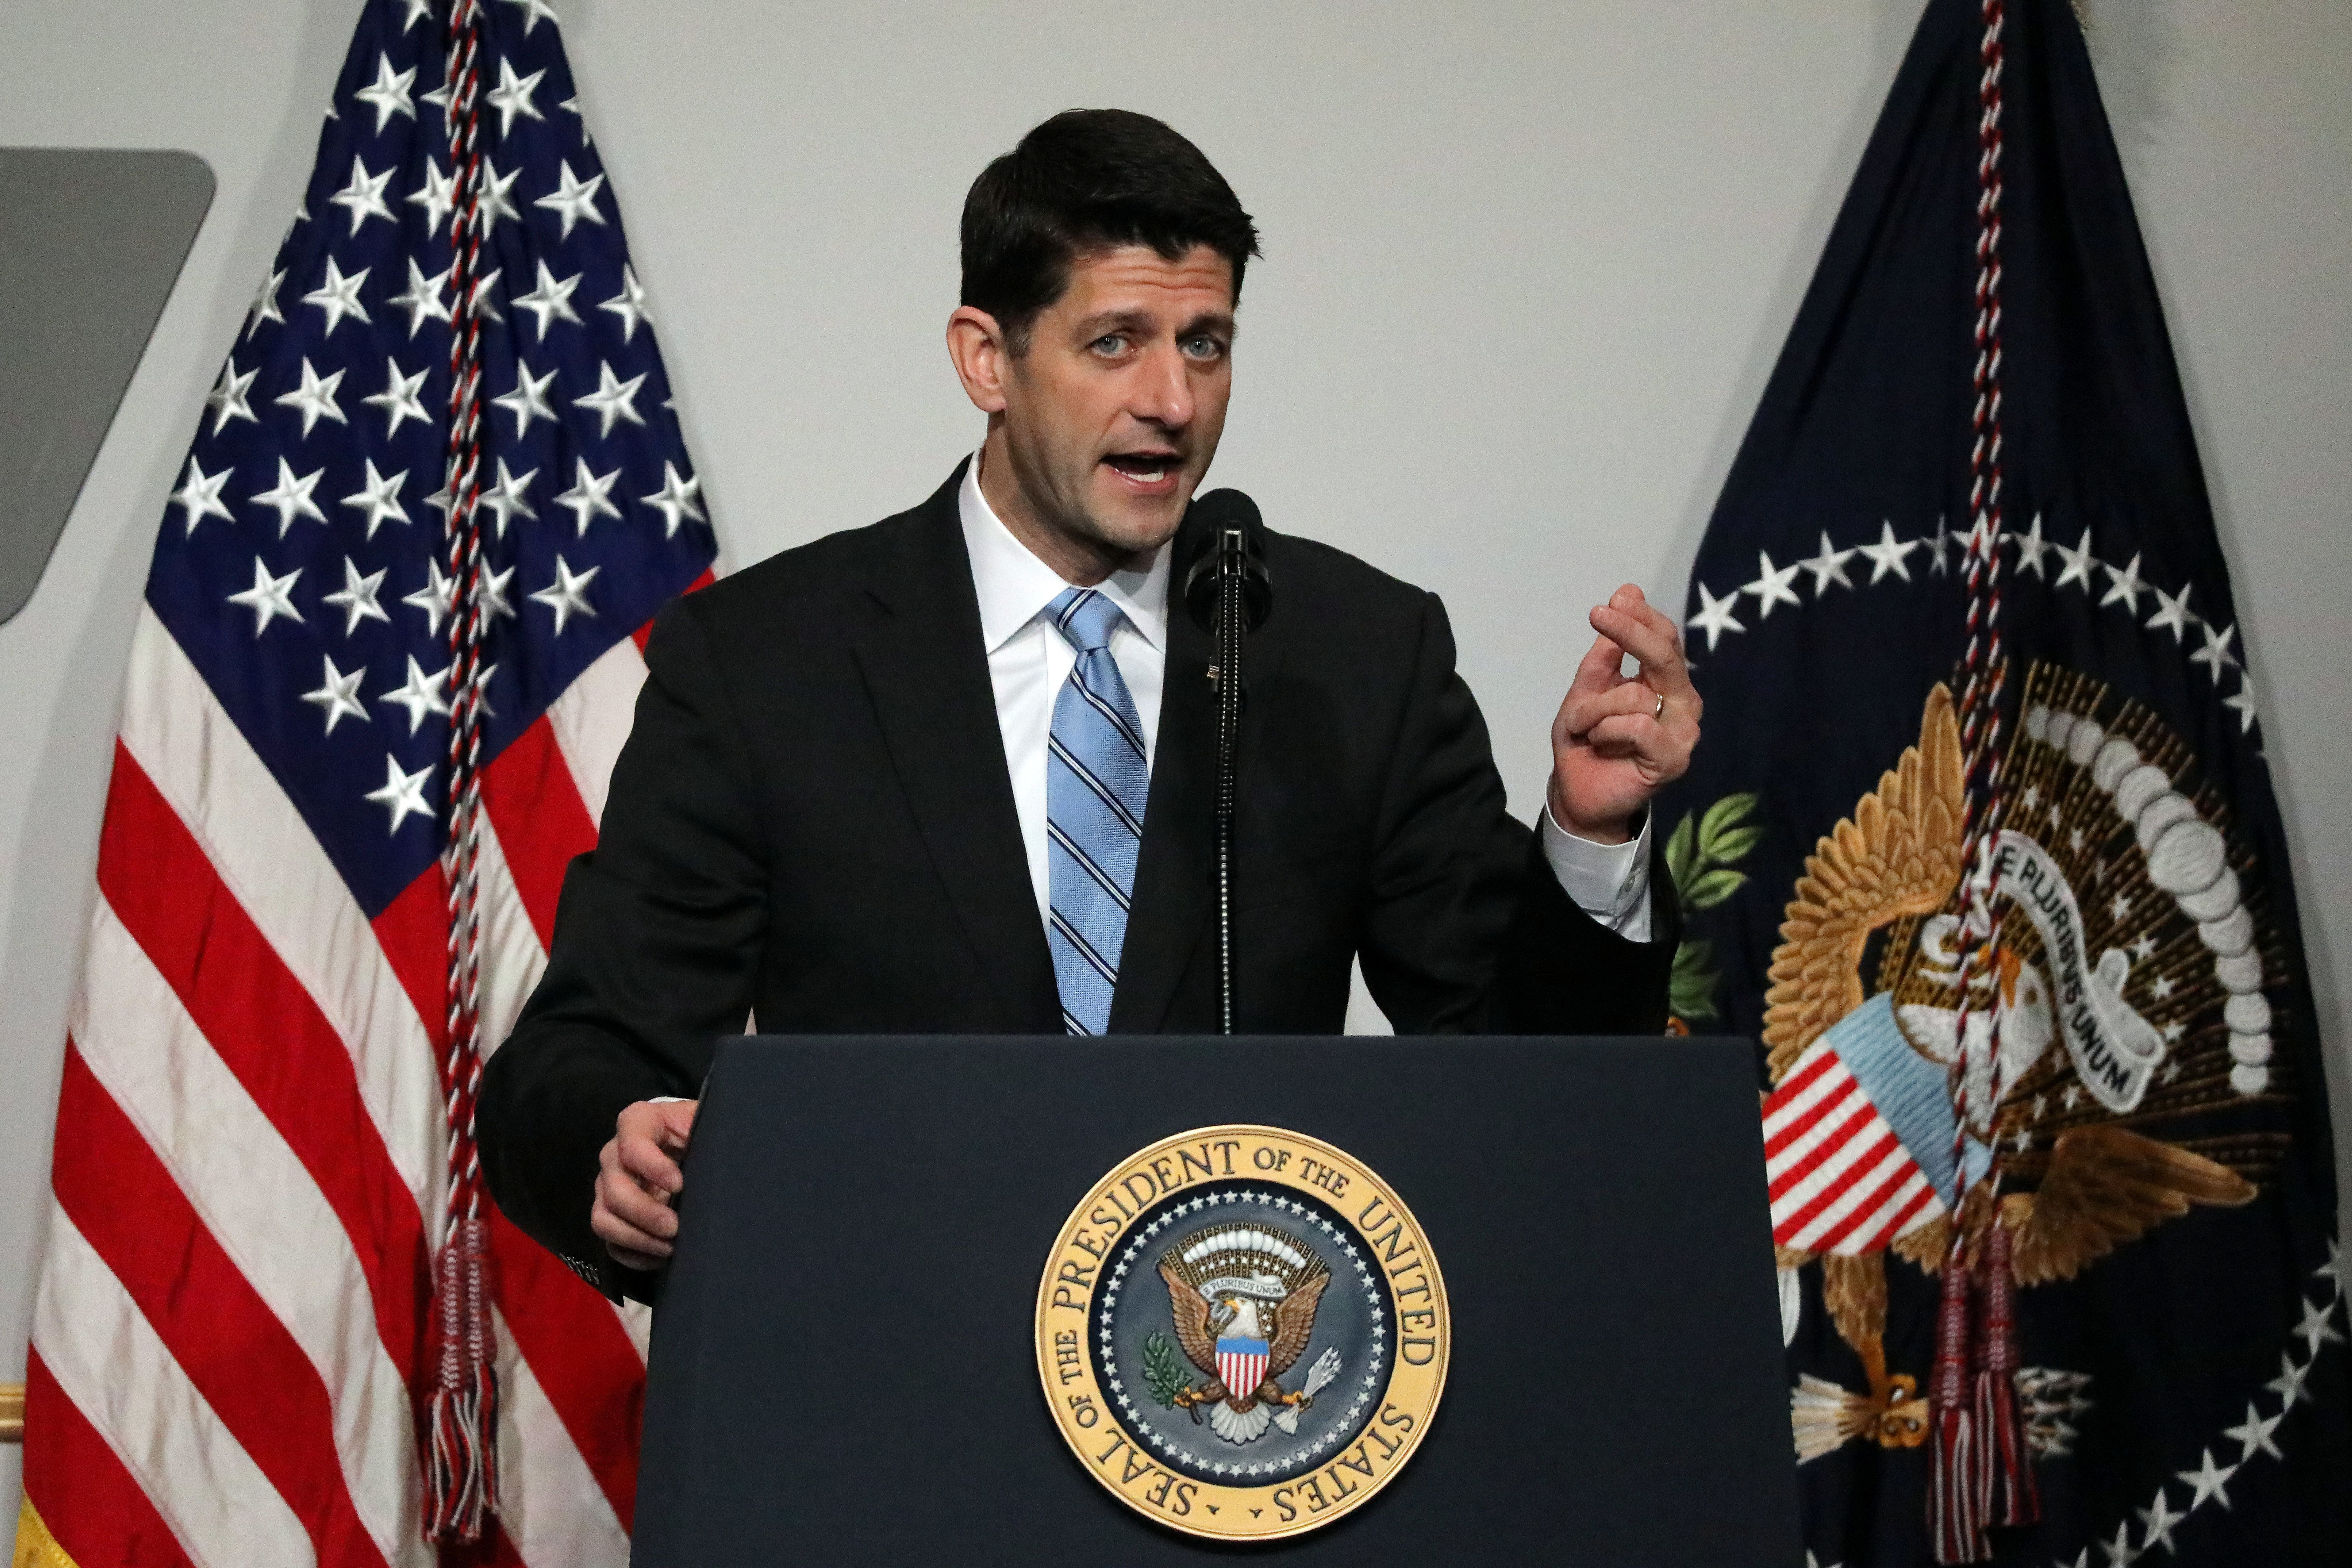 House Speaker Paul Ryan (R-Wis.) has scheduled a vote on the Obamacare replacement bill for Thursday.